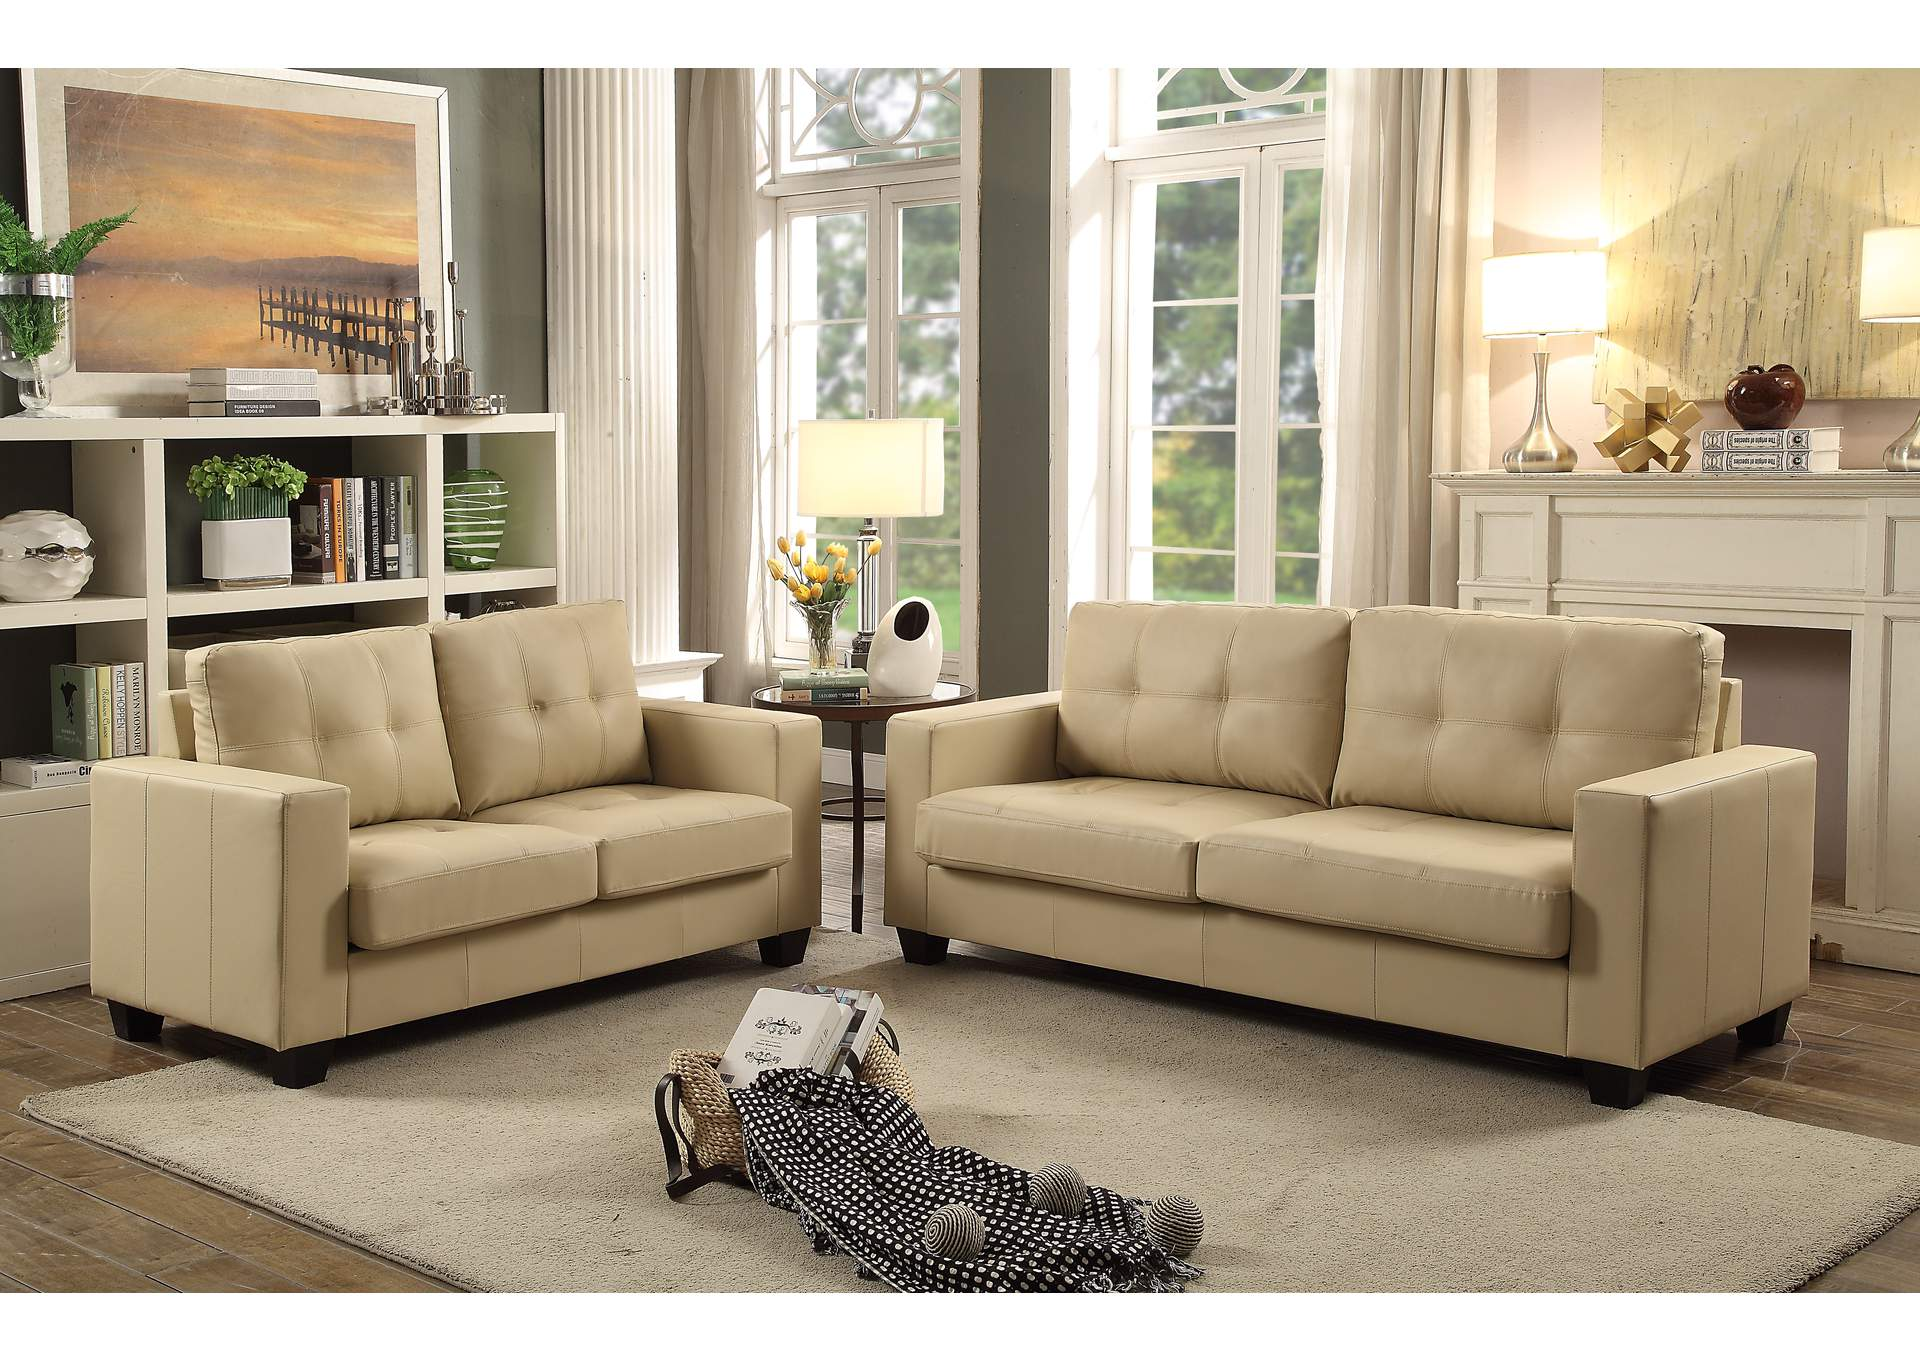 Beige Contemporary Leather Sofa & Loveseat,Global Trading